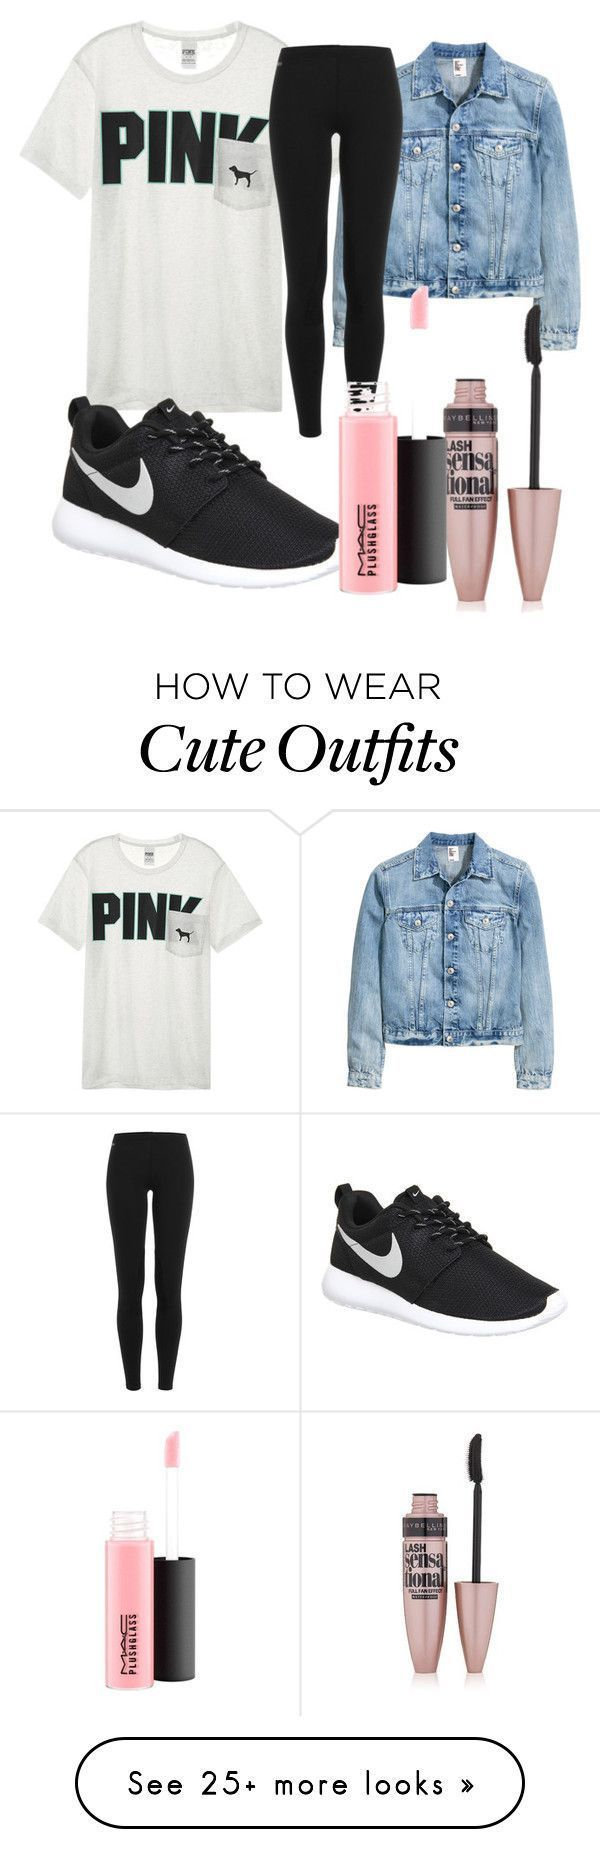 """FIRST DAY OF SCHOOL OUTFIT"" by caraelizabett on Polyvore featuring Victoria's Secret, Polo Ralph Lauren, NIKE, Maybelline and MAC Cosmetics – Outfits"